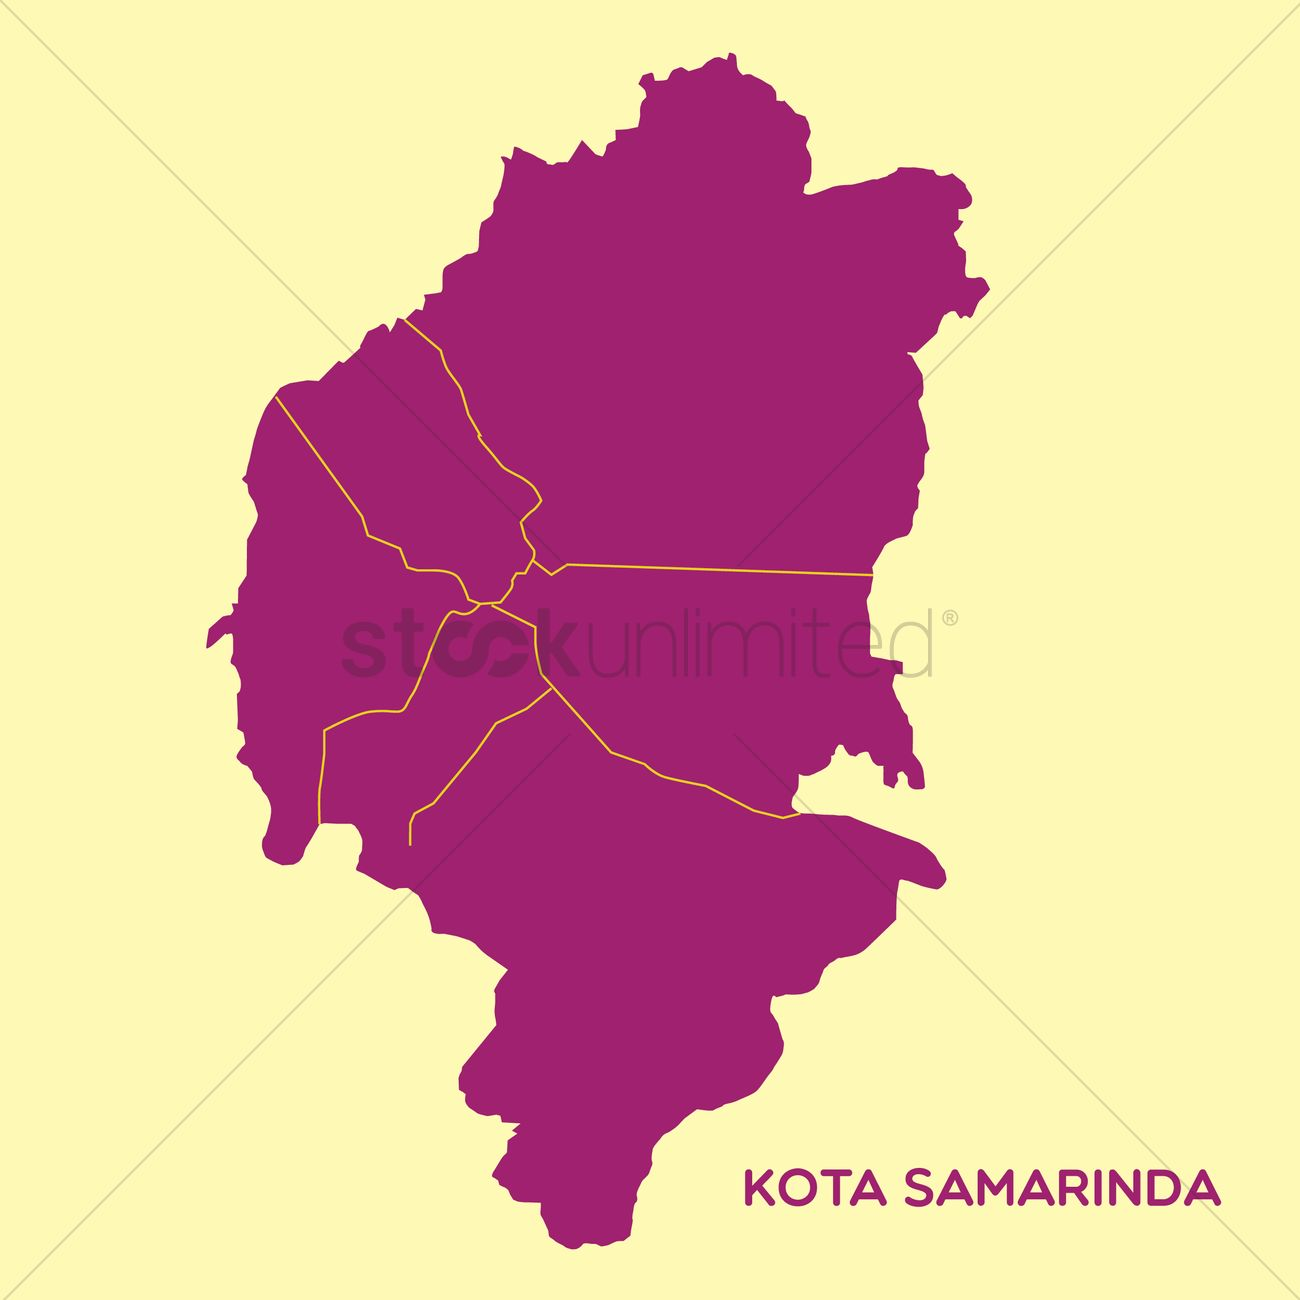 Map of kota samarinda Vector Image - 1480225 | StockUnlimited